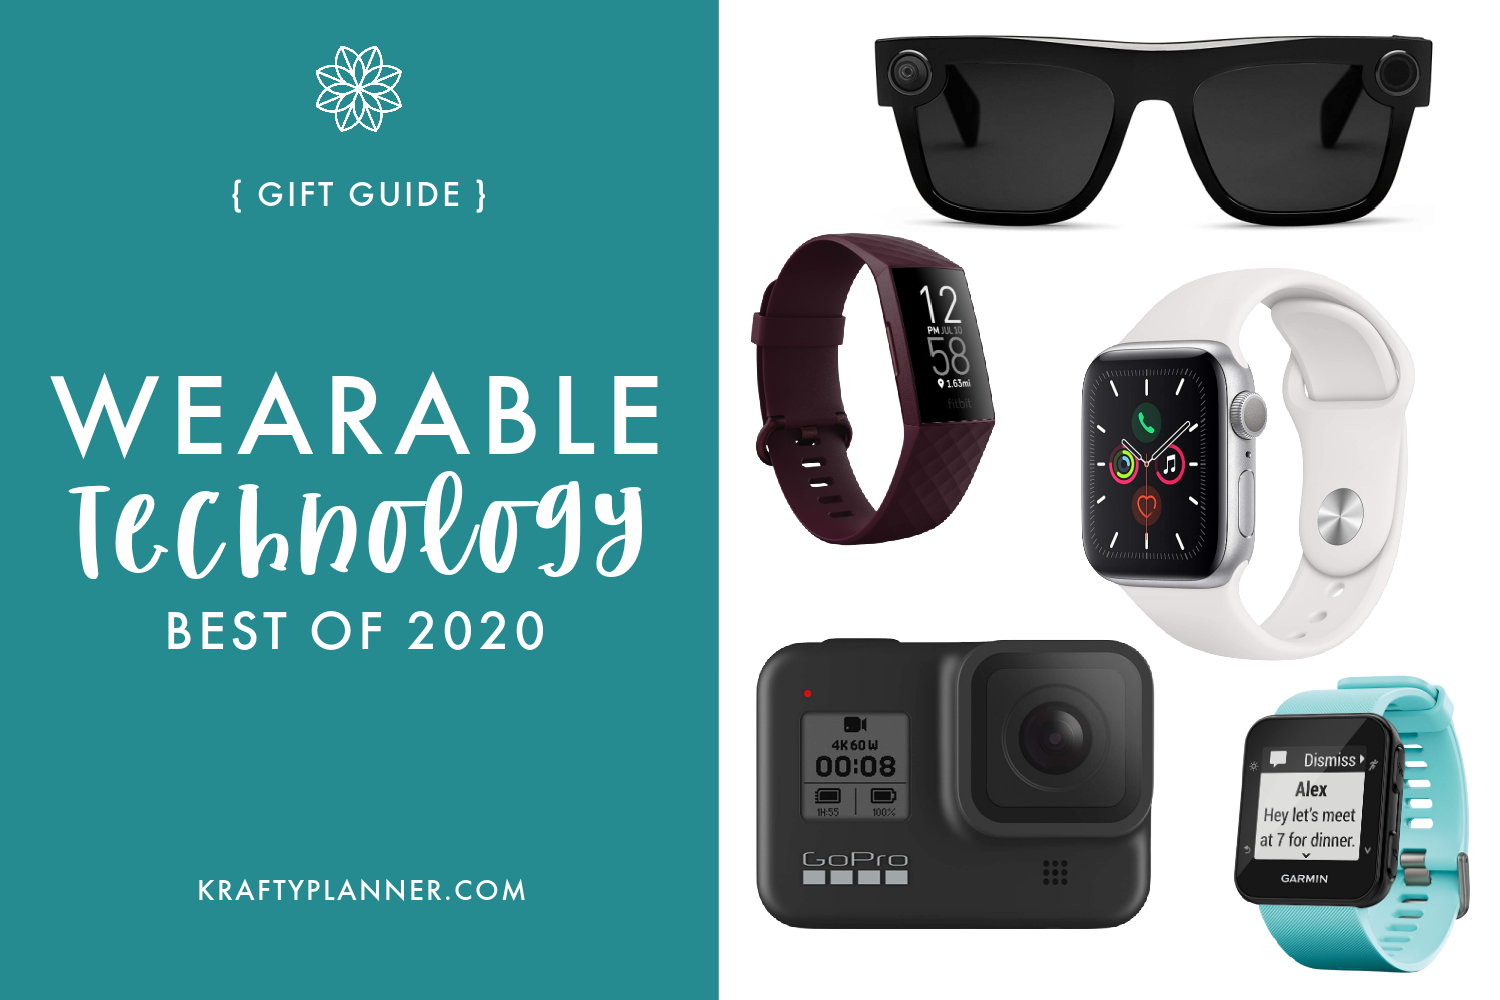 2020 Gift Guide: Wearable Technology